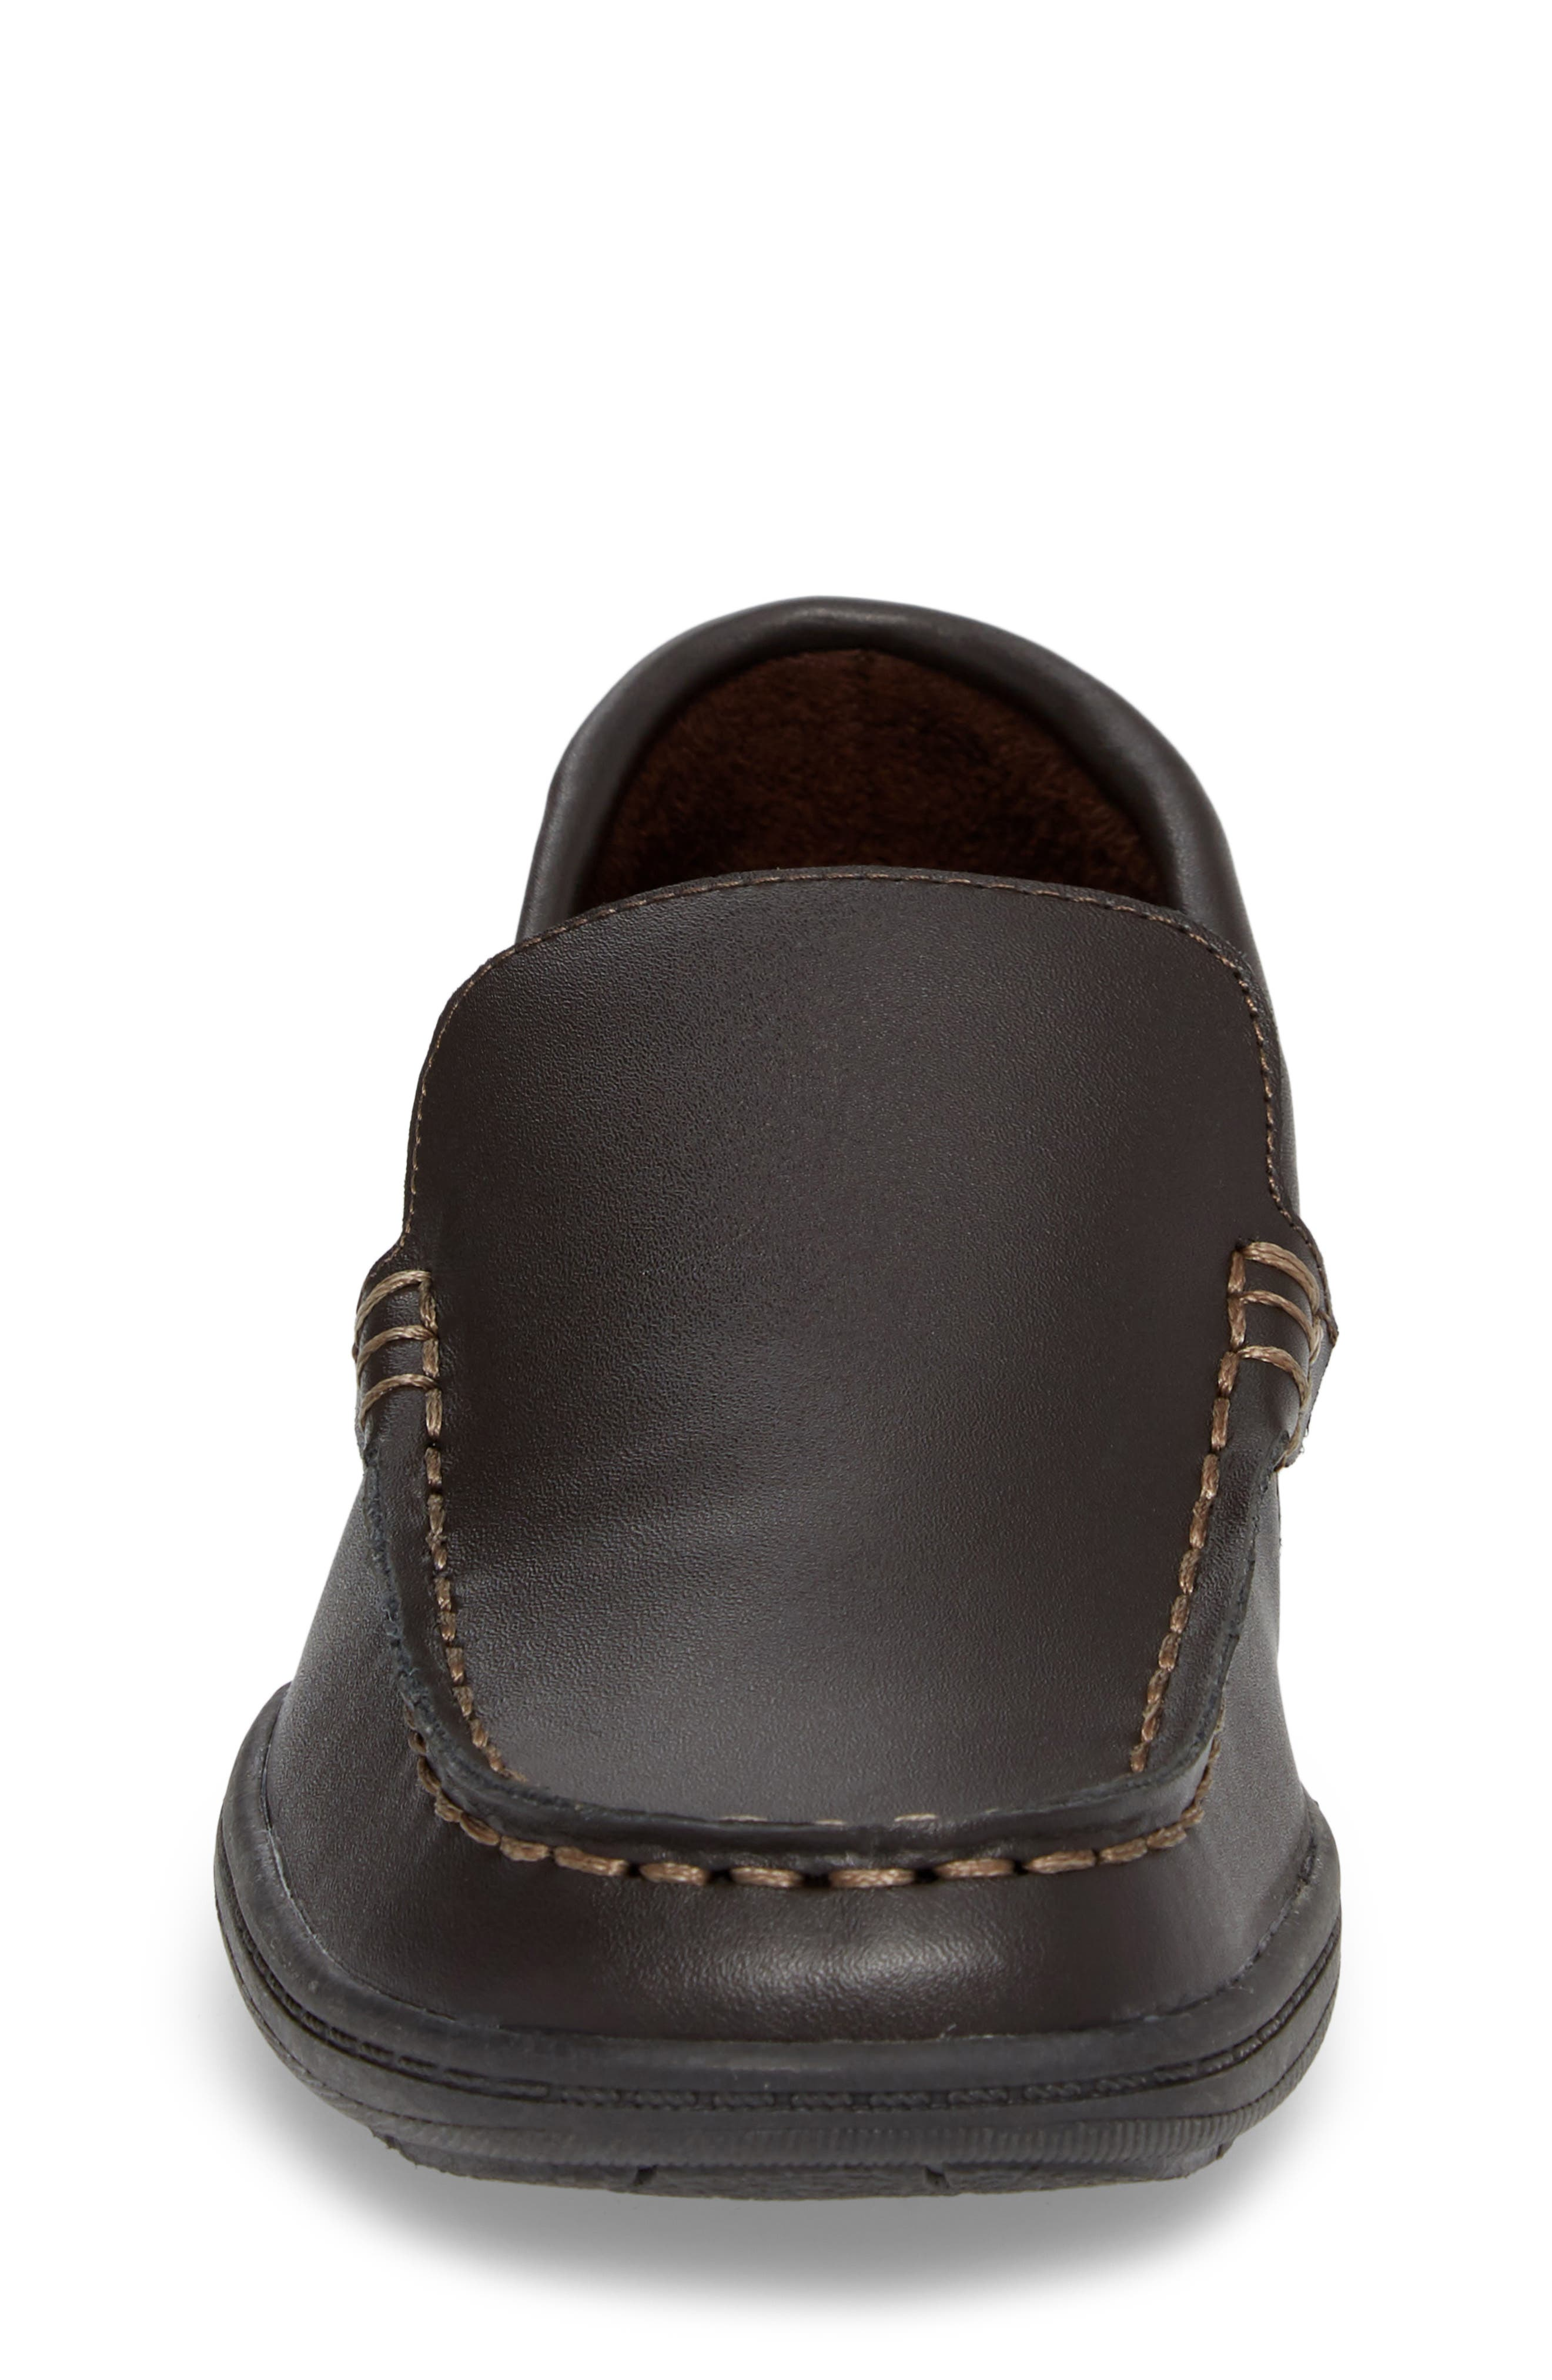 Driving Dime Moccasin,                             Alternate thumbnail 4, color,                             Dark Brown Leather